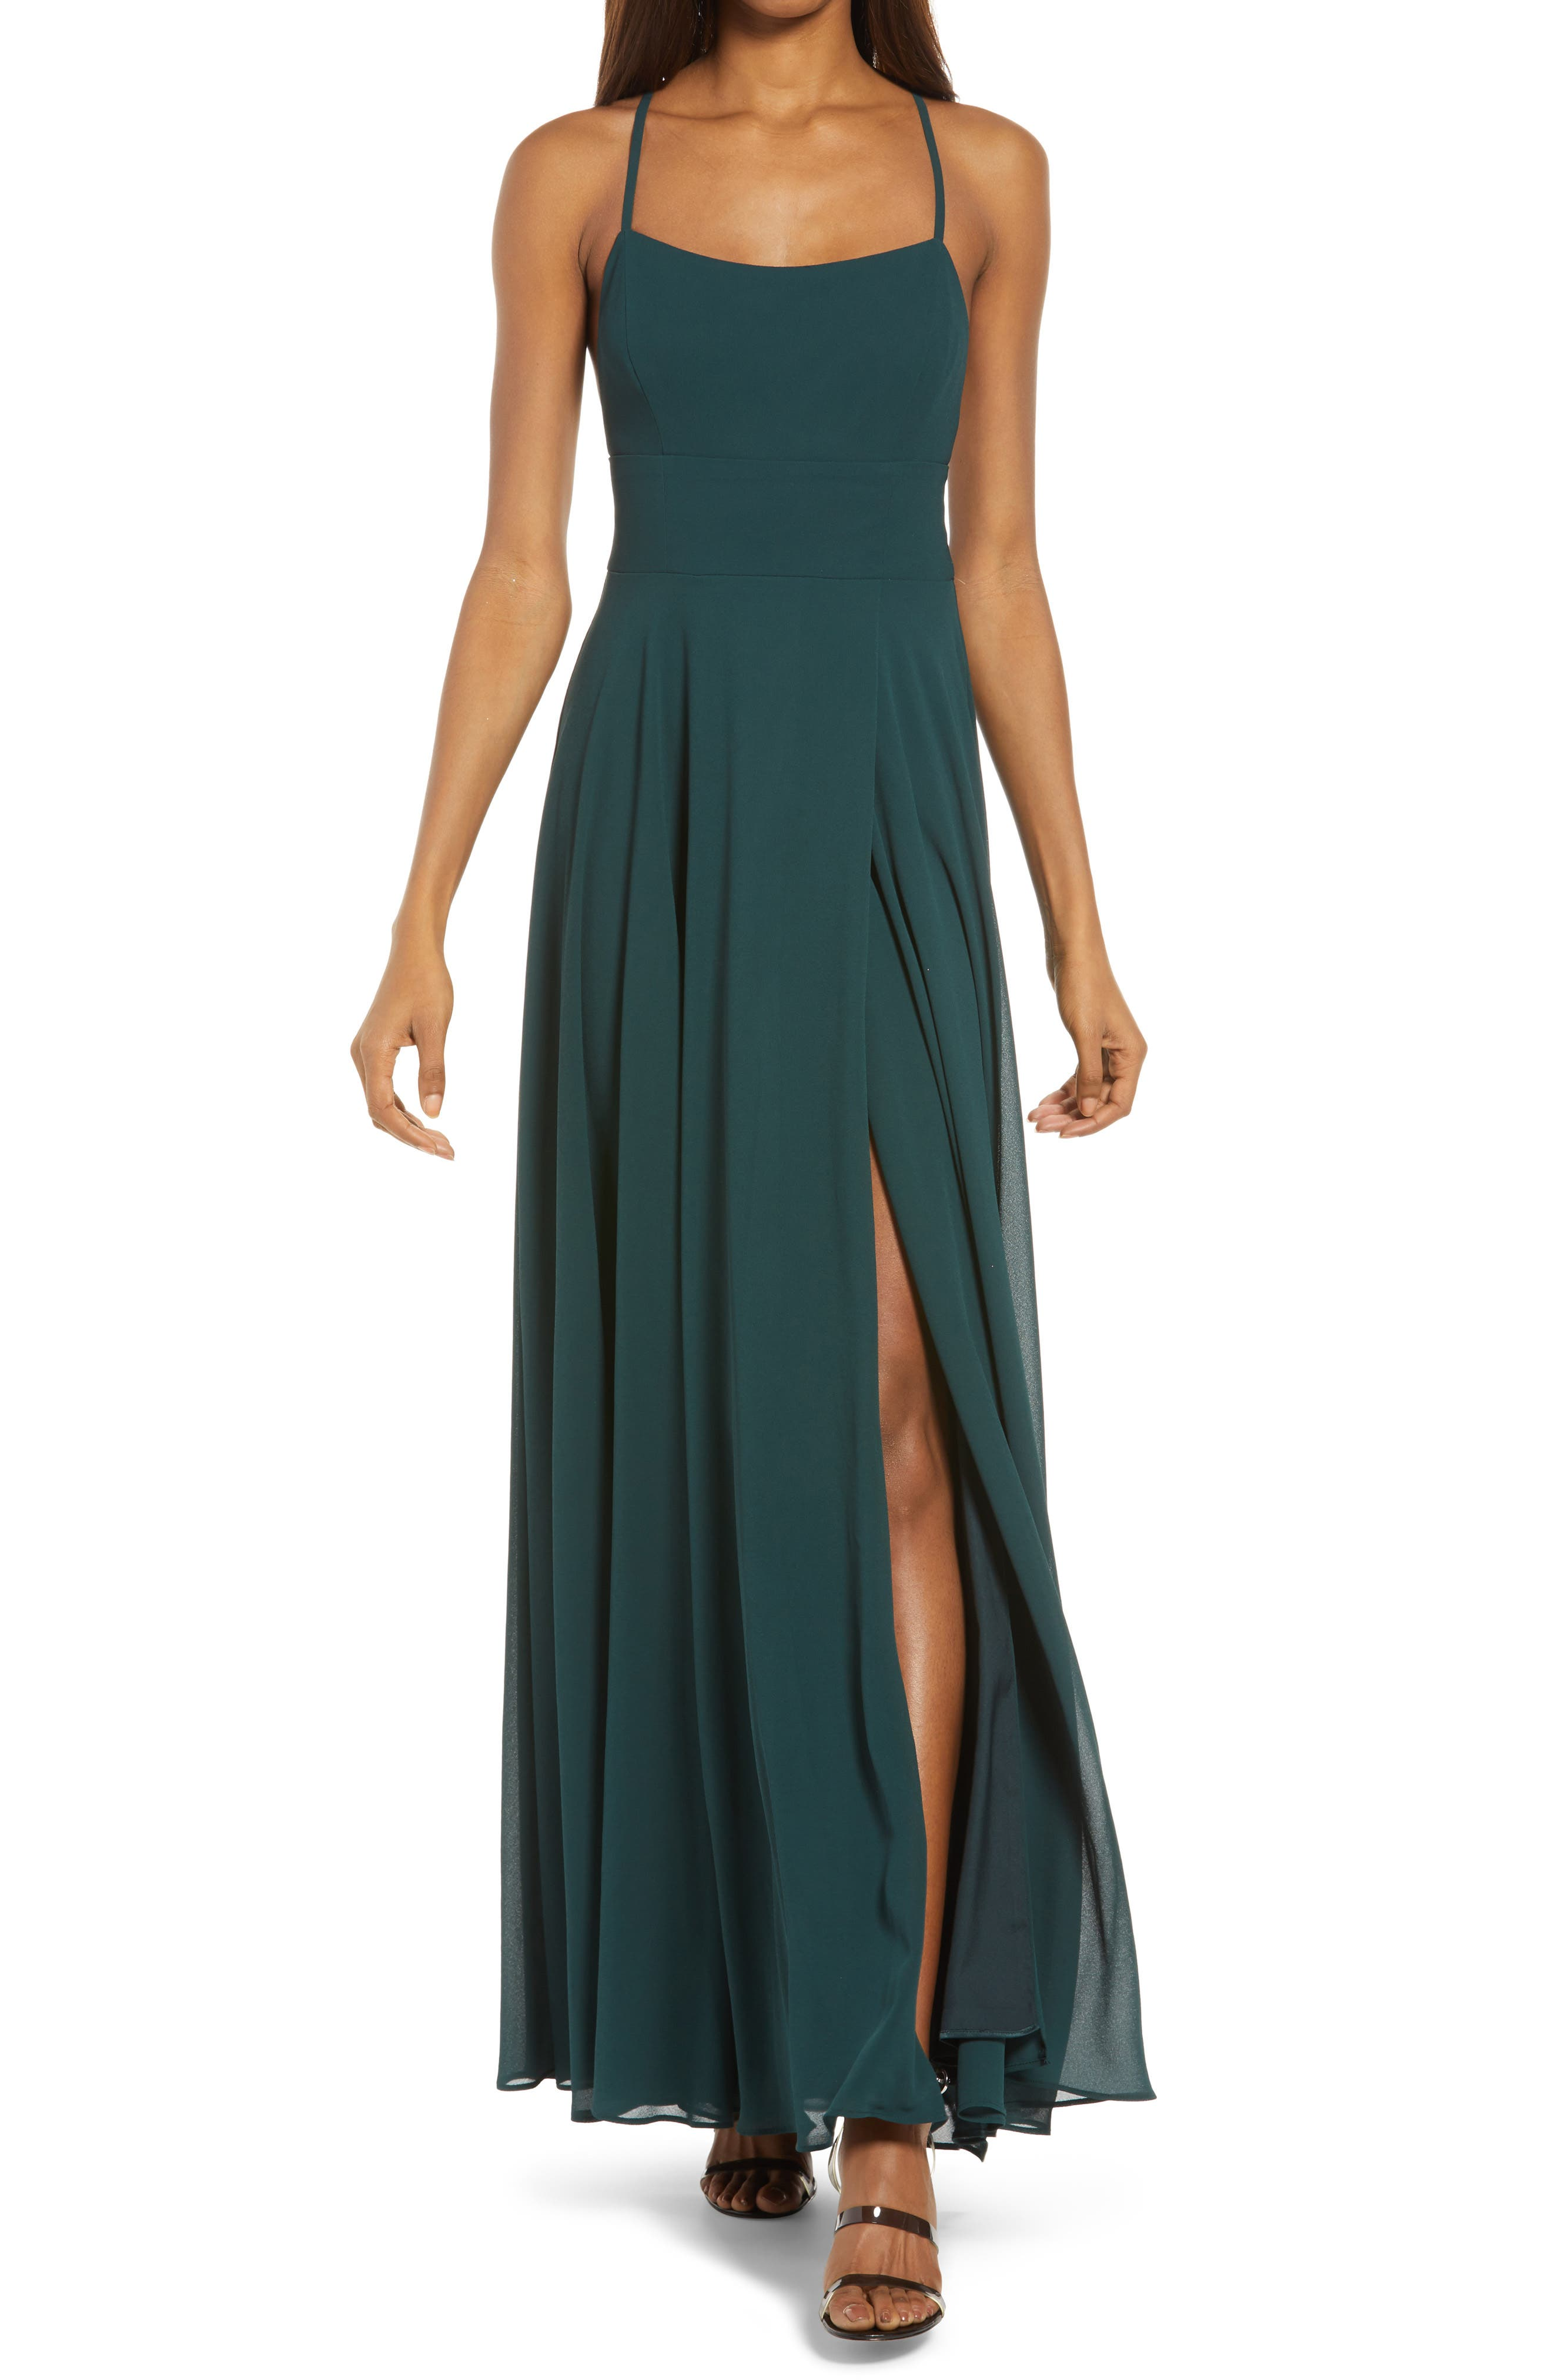 OMINA Womens Colorful Off The Shoulder Maxi Dress Ladies Sleeveless Long Dresses Summer